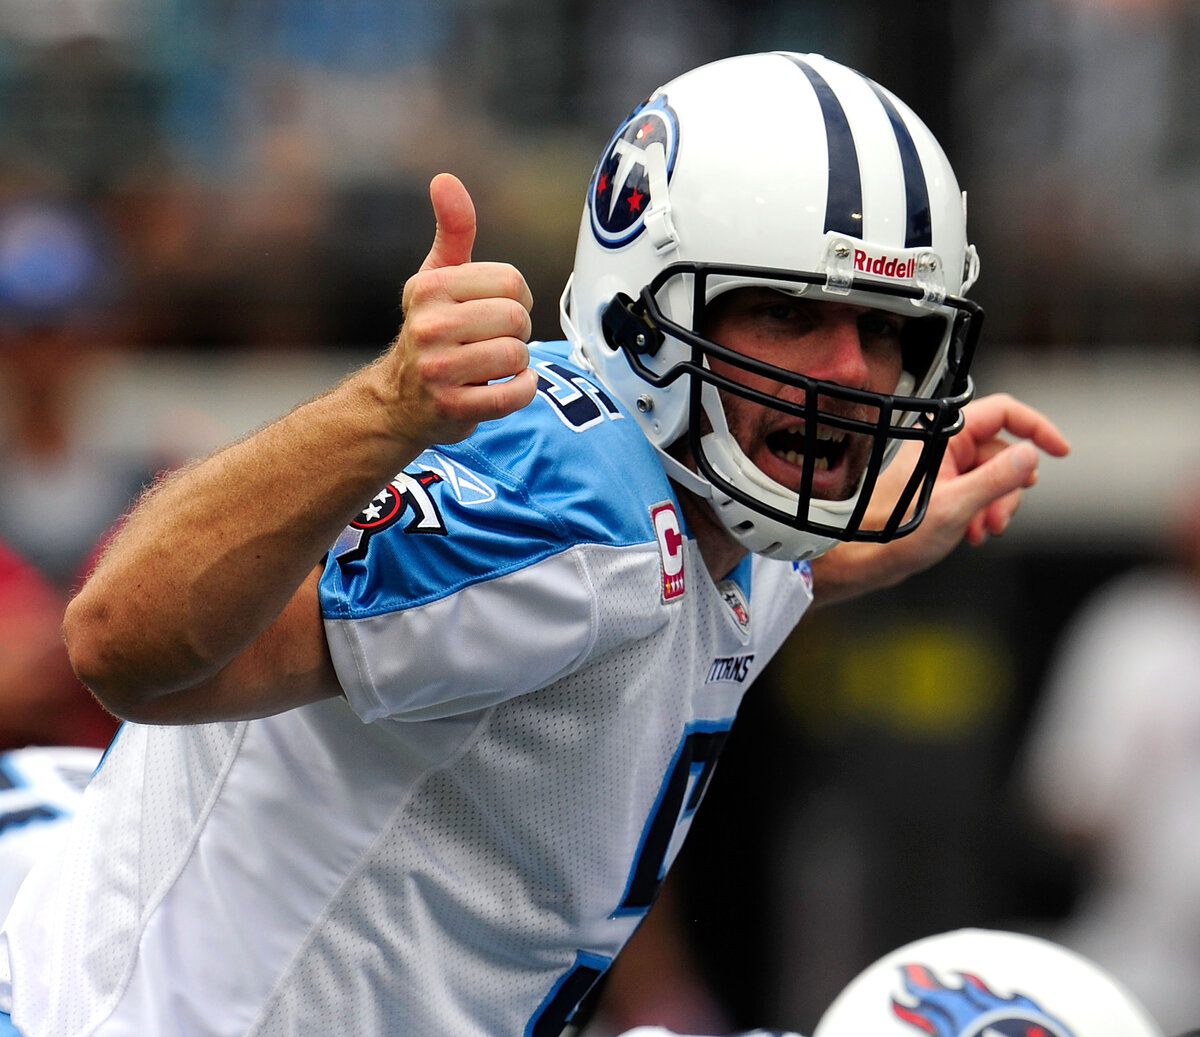 Kerry Collins impressed for several NFL teams, including the New York Giants and Tennessee Titans, in a long career. What is Collins doing now?